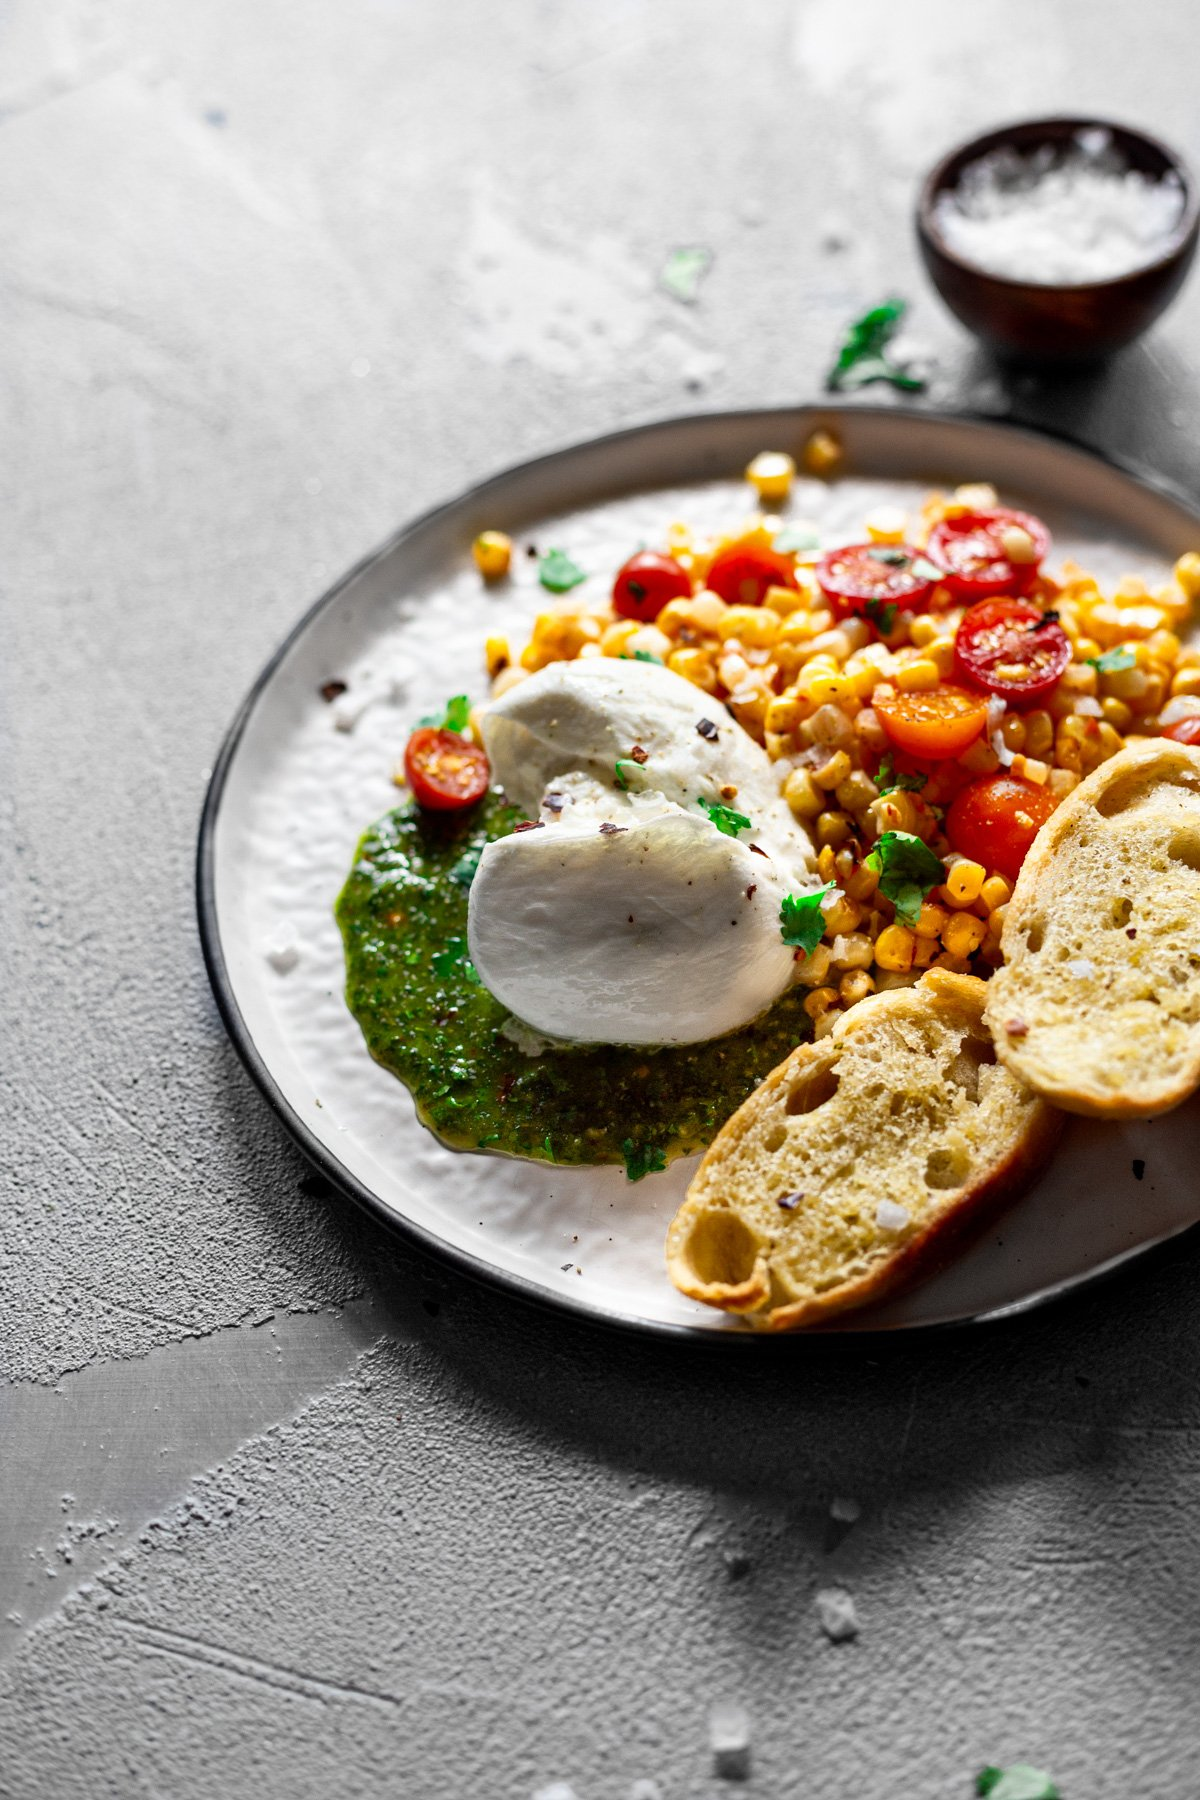 angled view of burrata with chimichurri sauce and corn and tomato salad